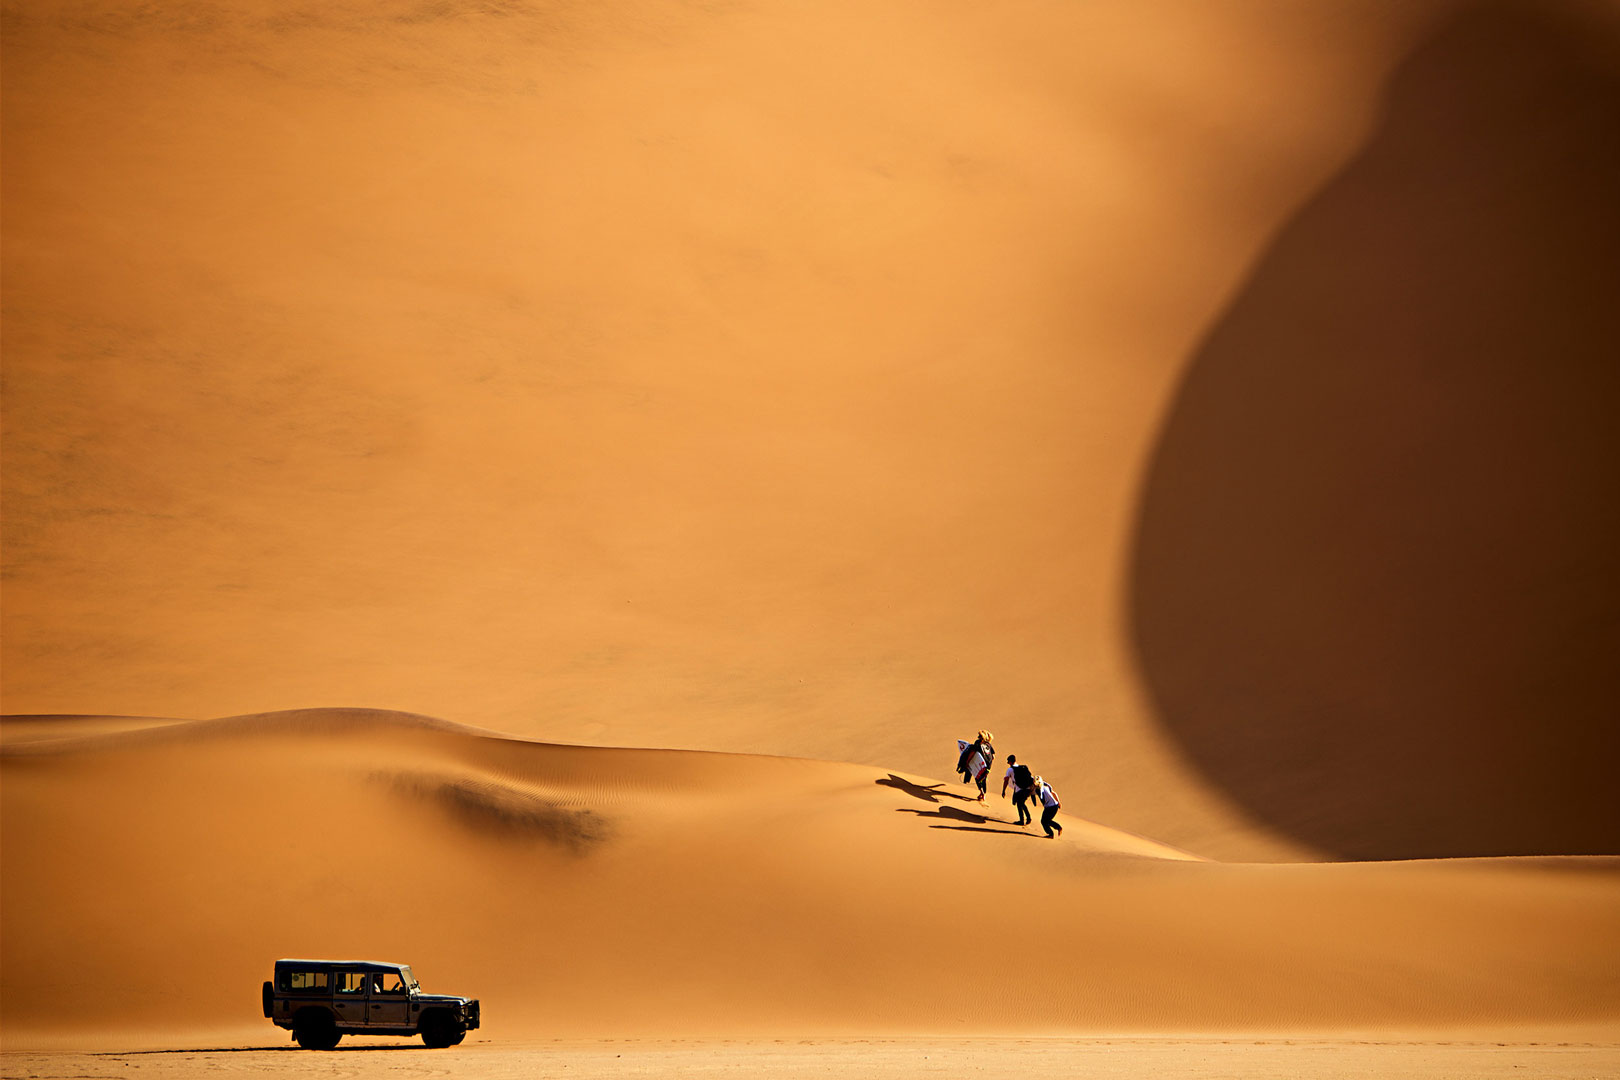 SURF ADVENTURE TRAVEL Mad Max territory in Namibia with crew from Rip Curl's 'The Search' campaign